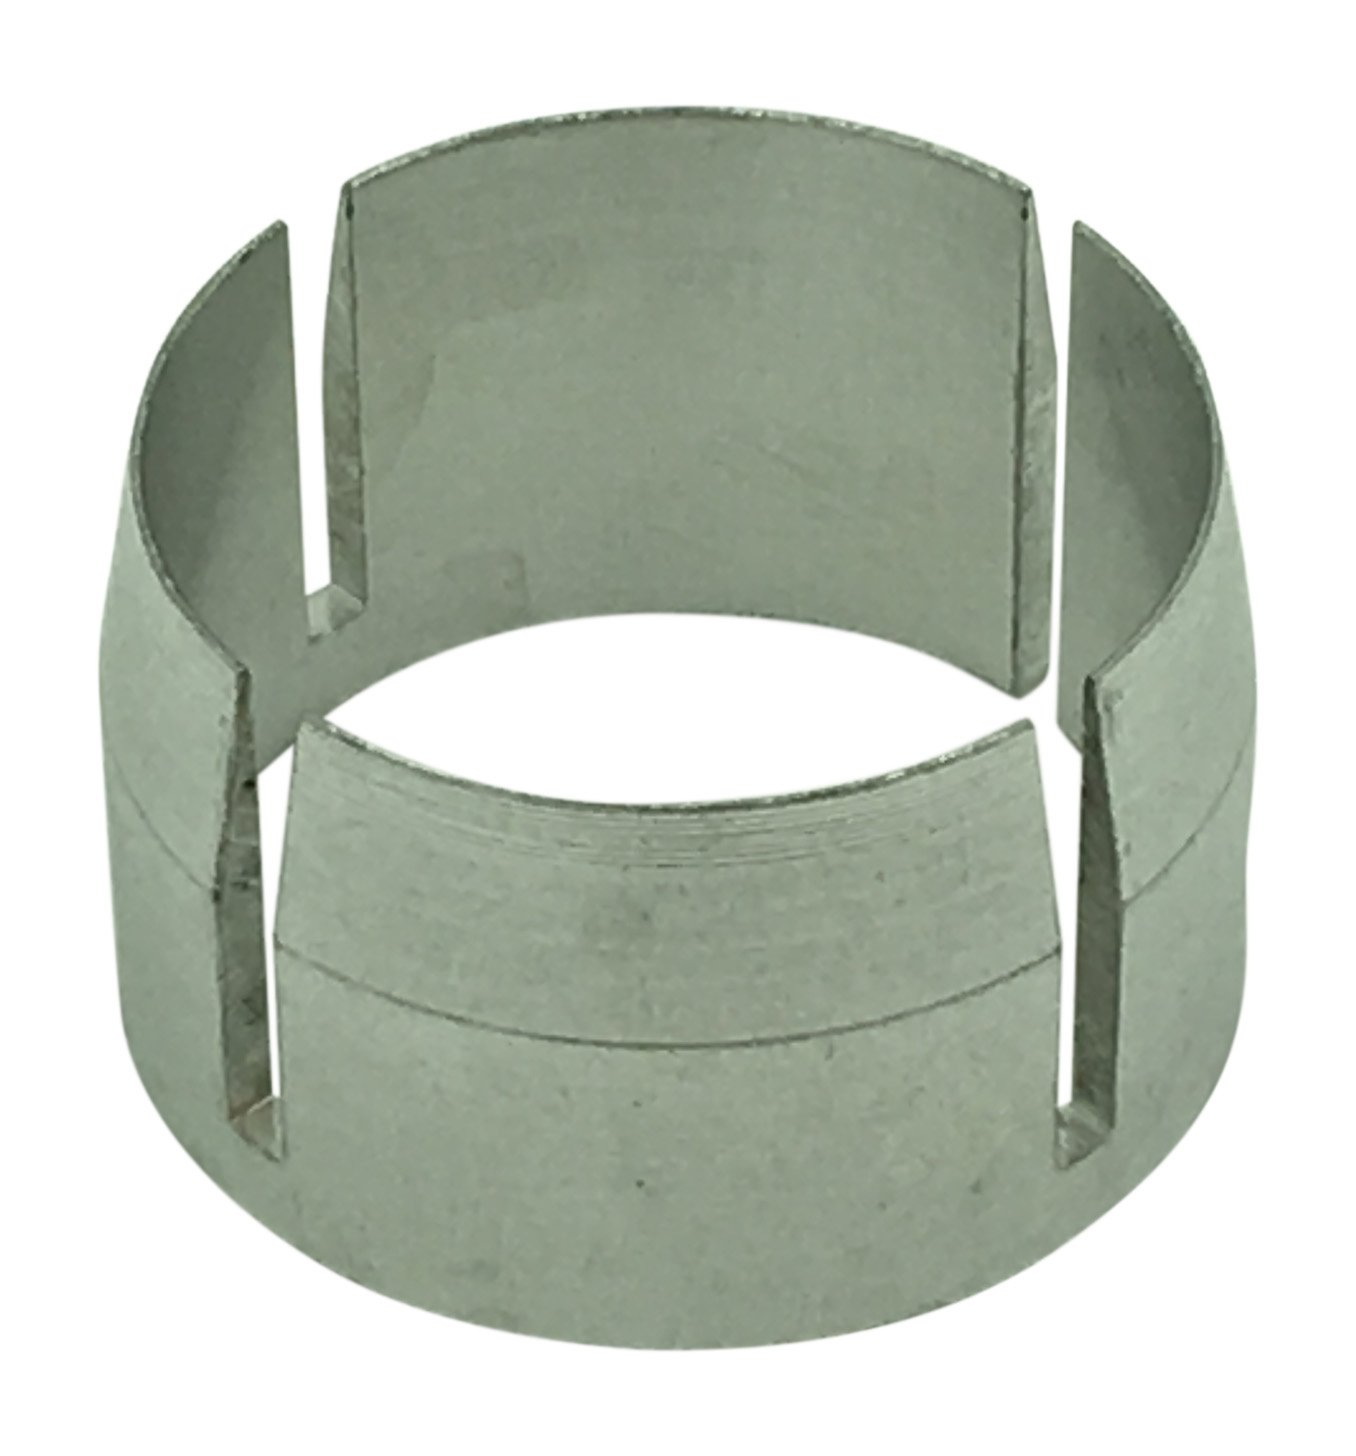 .937 to .968 or 23.80 mm to 24.58 mm Meyer Gage B968 8W968 Bushing